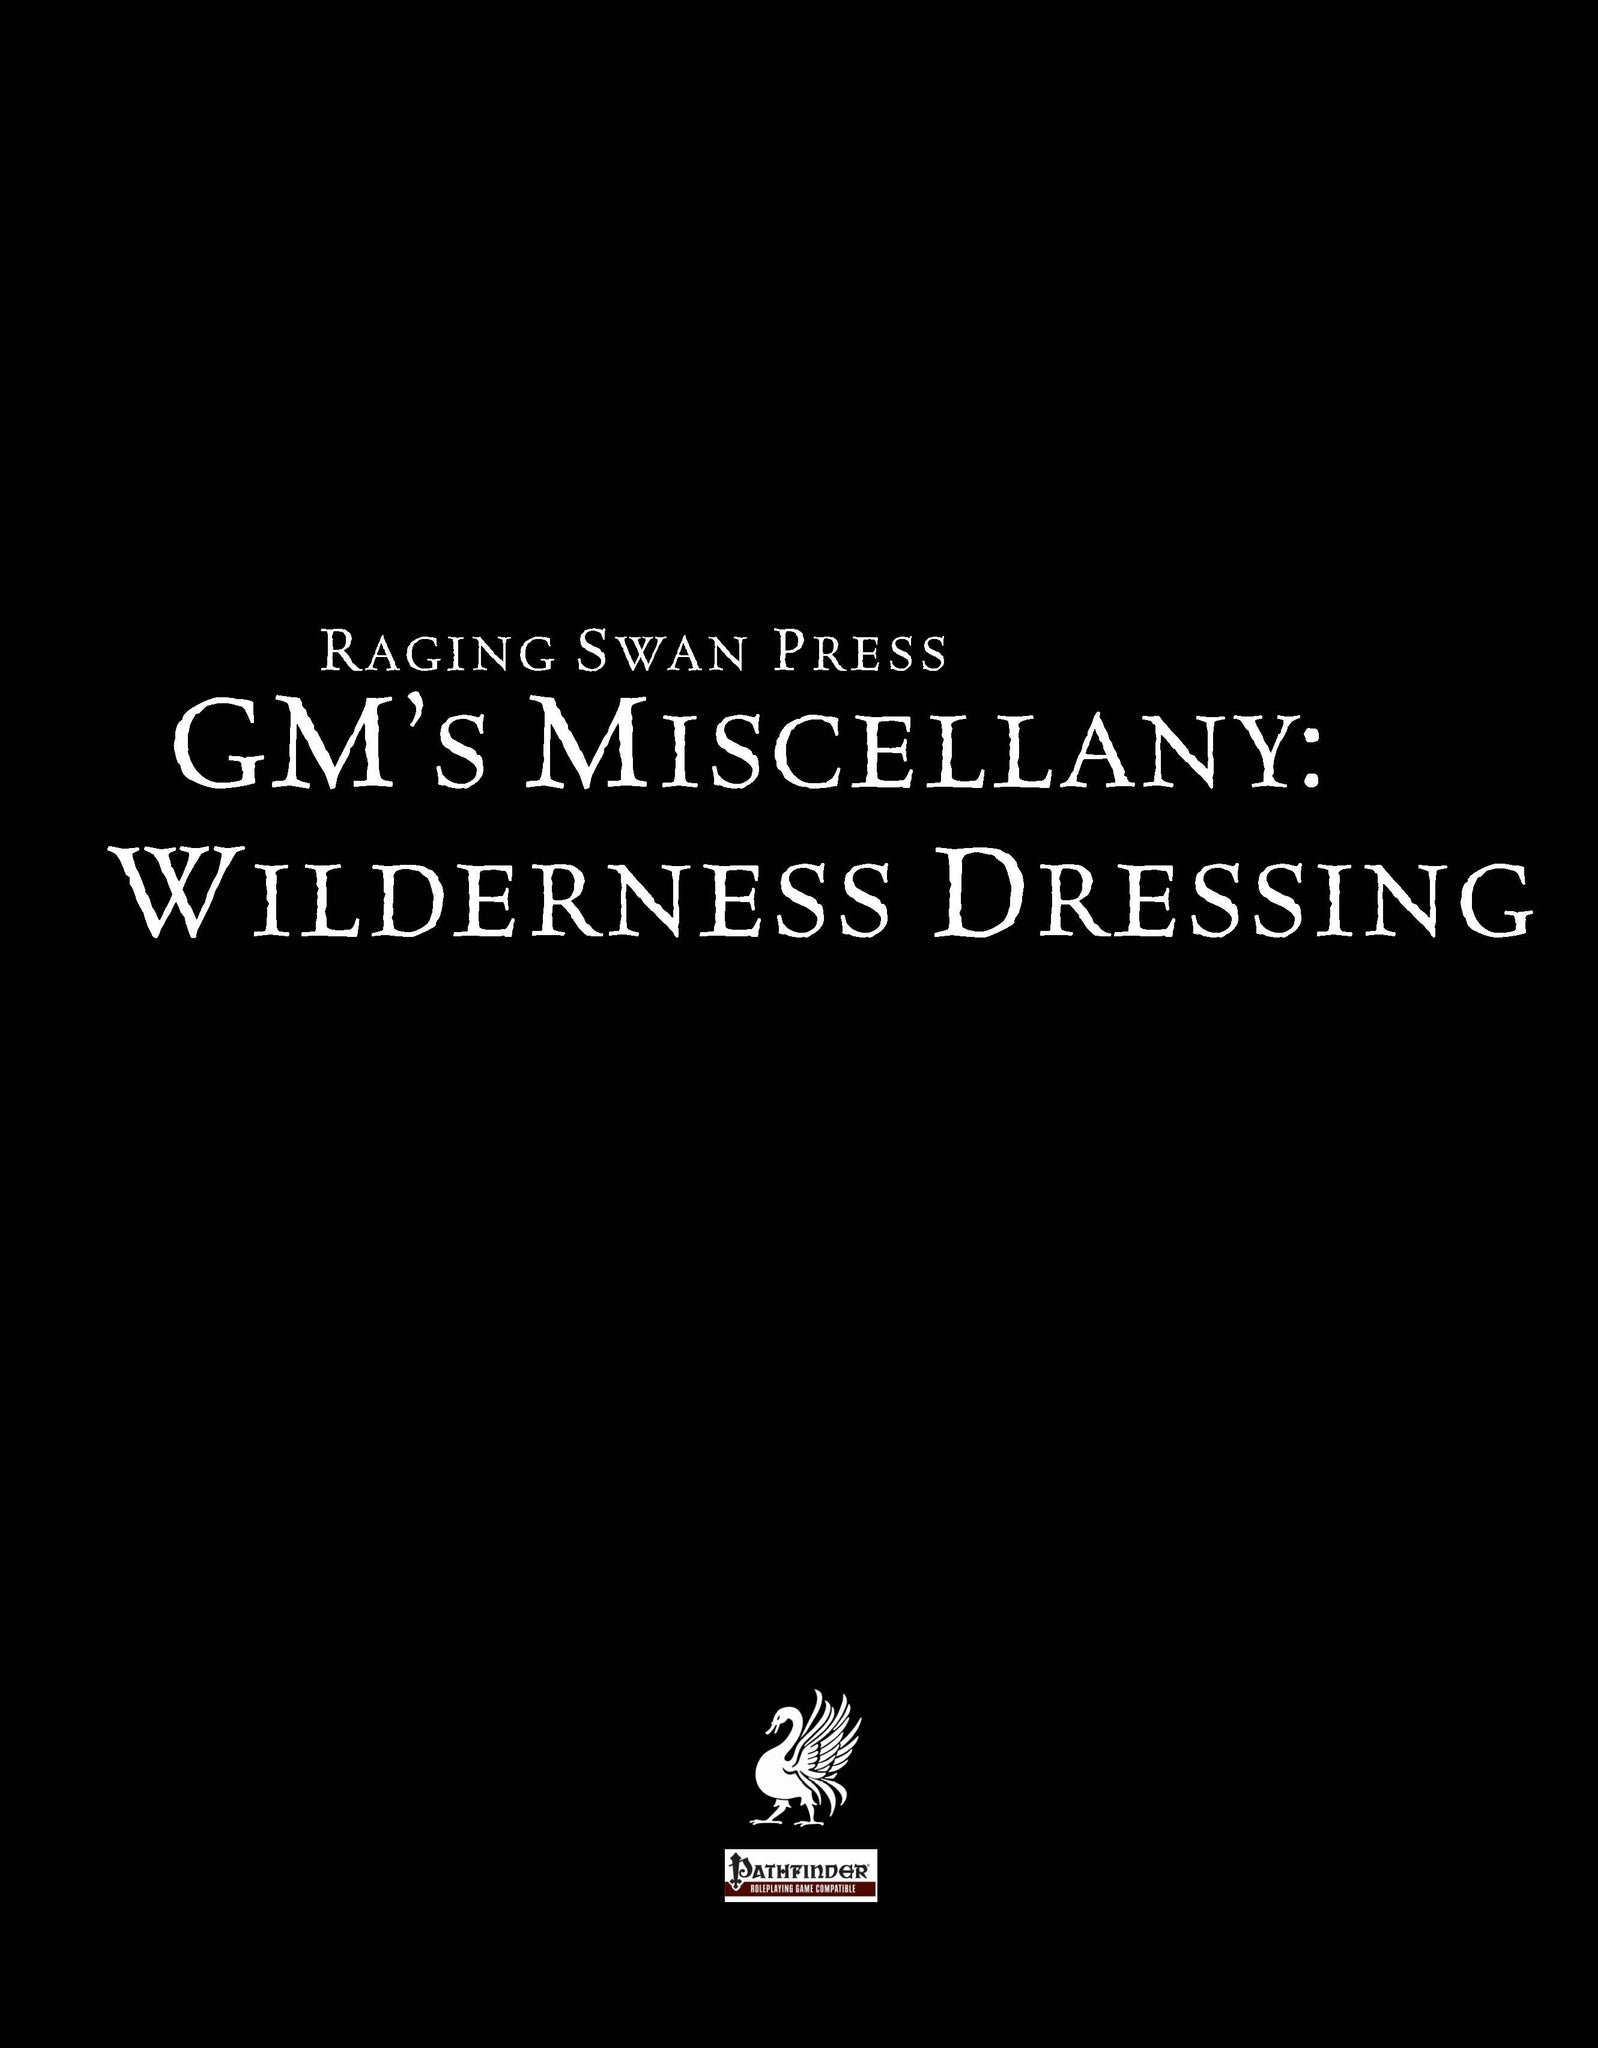 GM's Miscellany: Wilderness Dressing